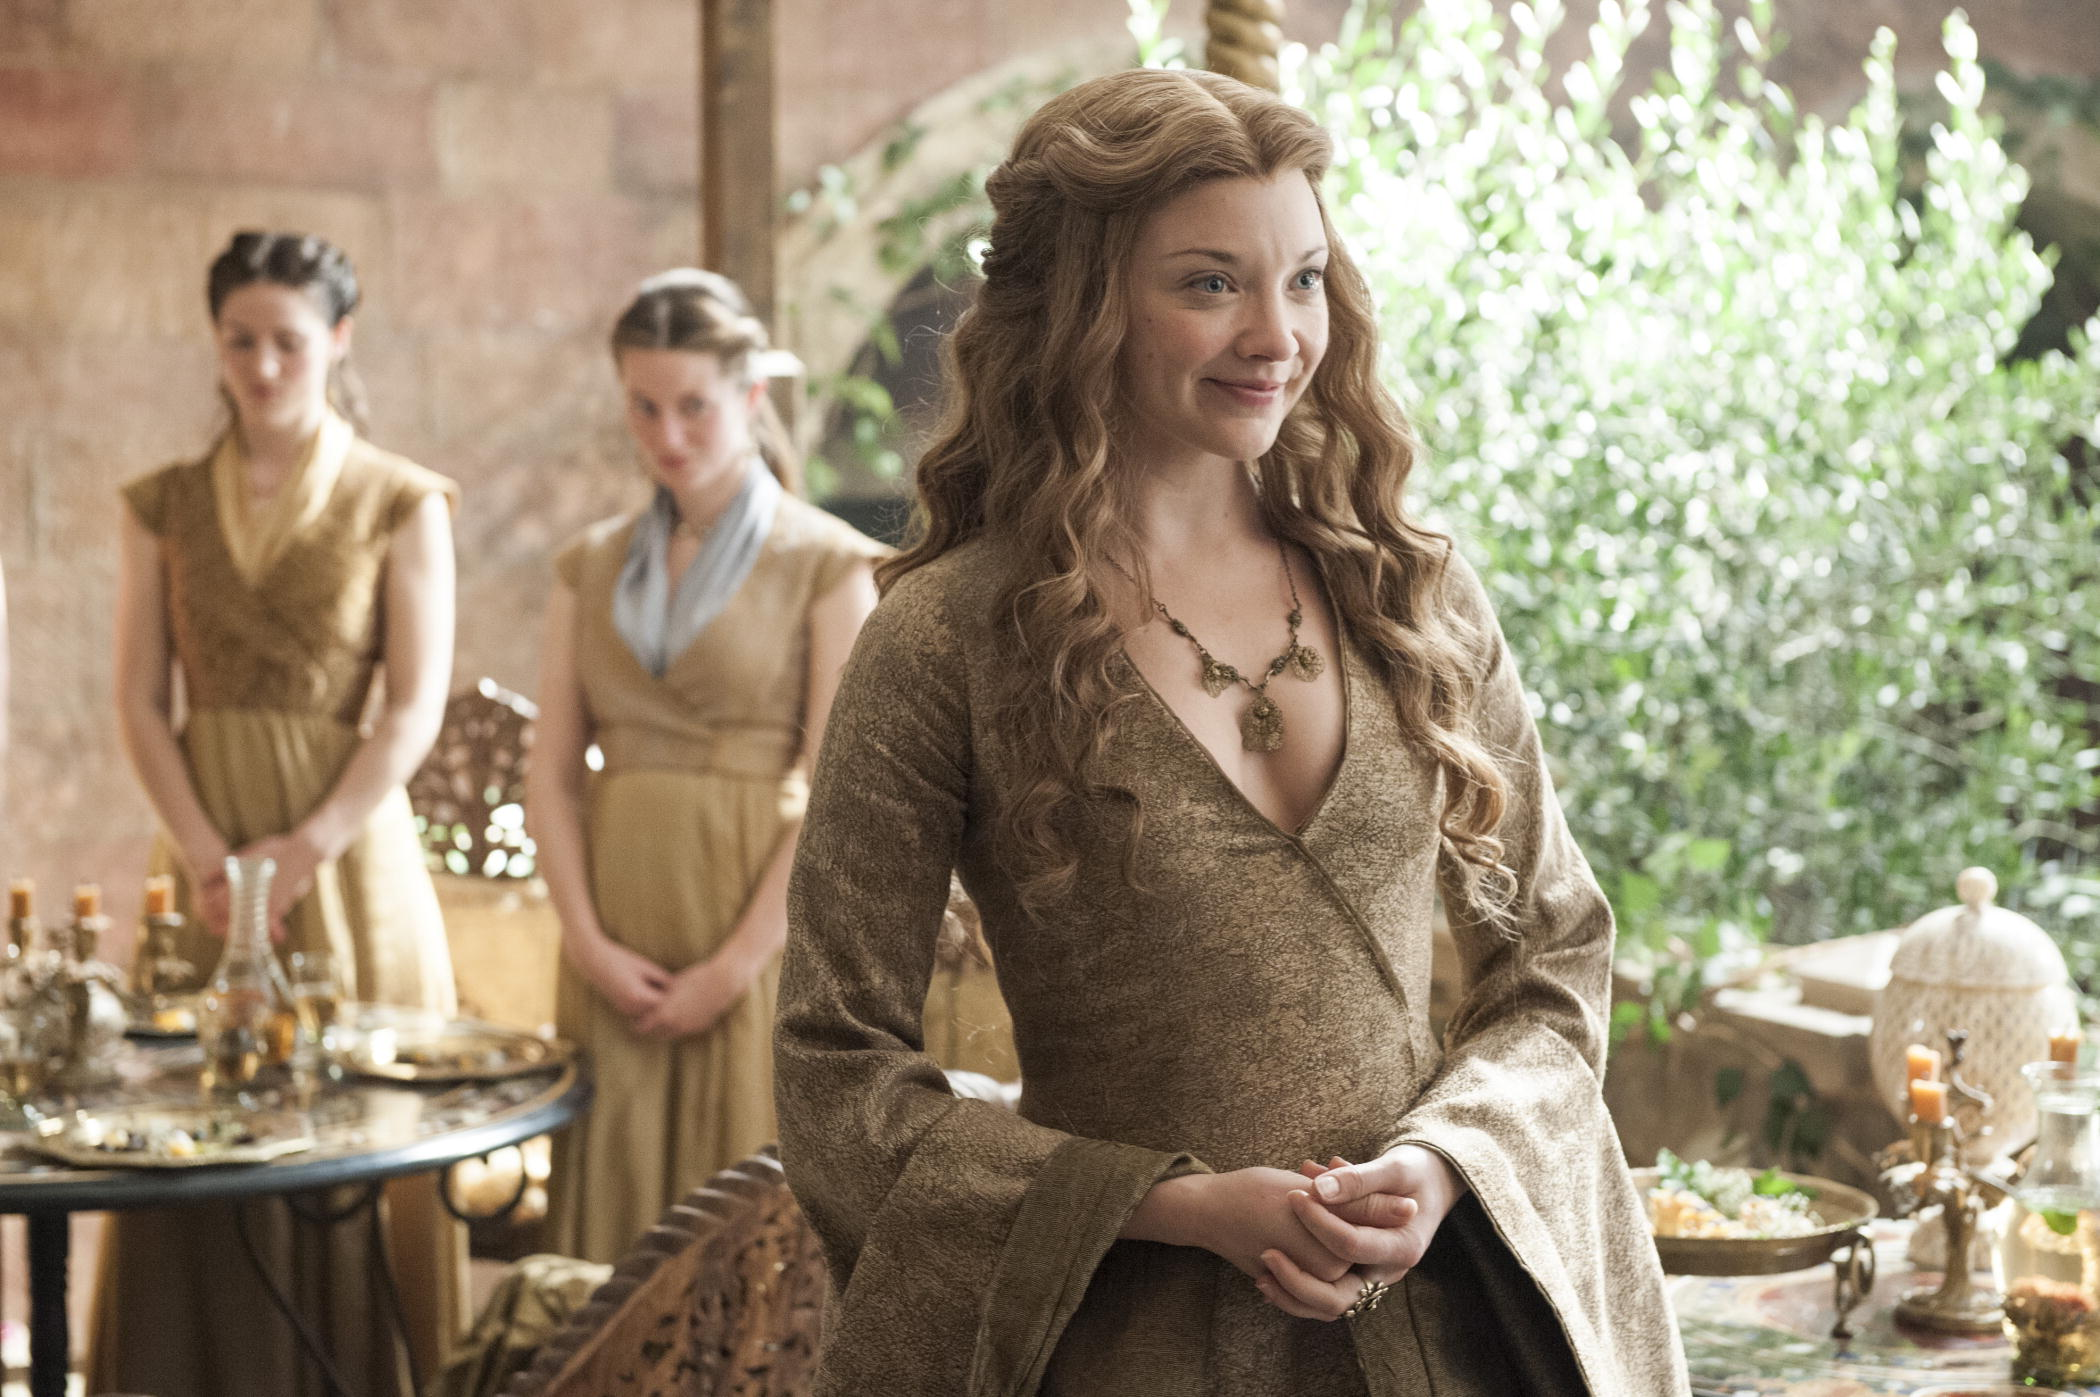 Get Inspired by these Imposing Game Of Thrones Outfits